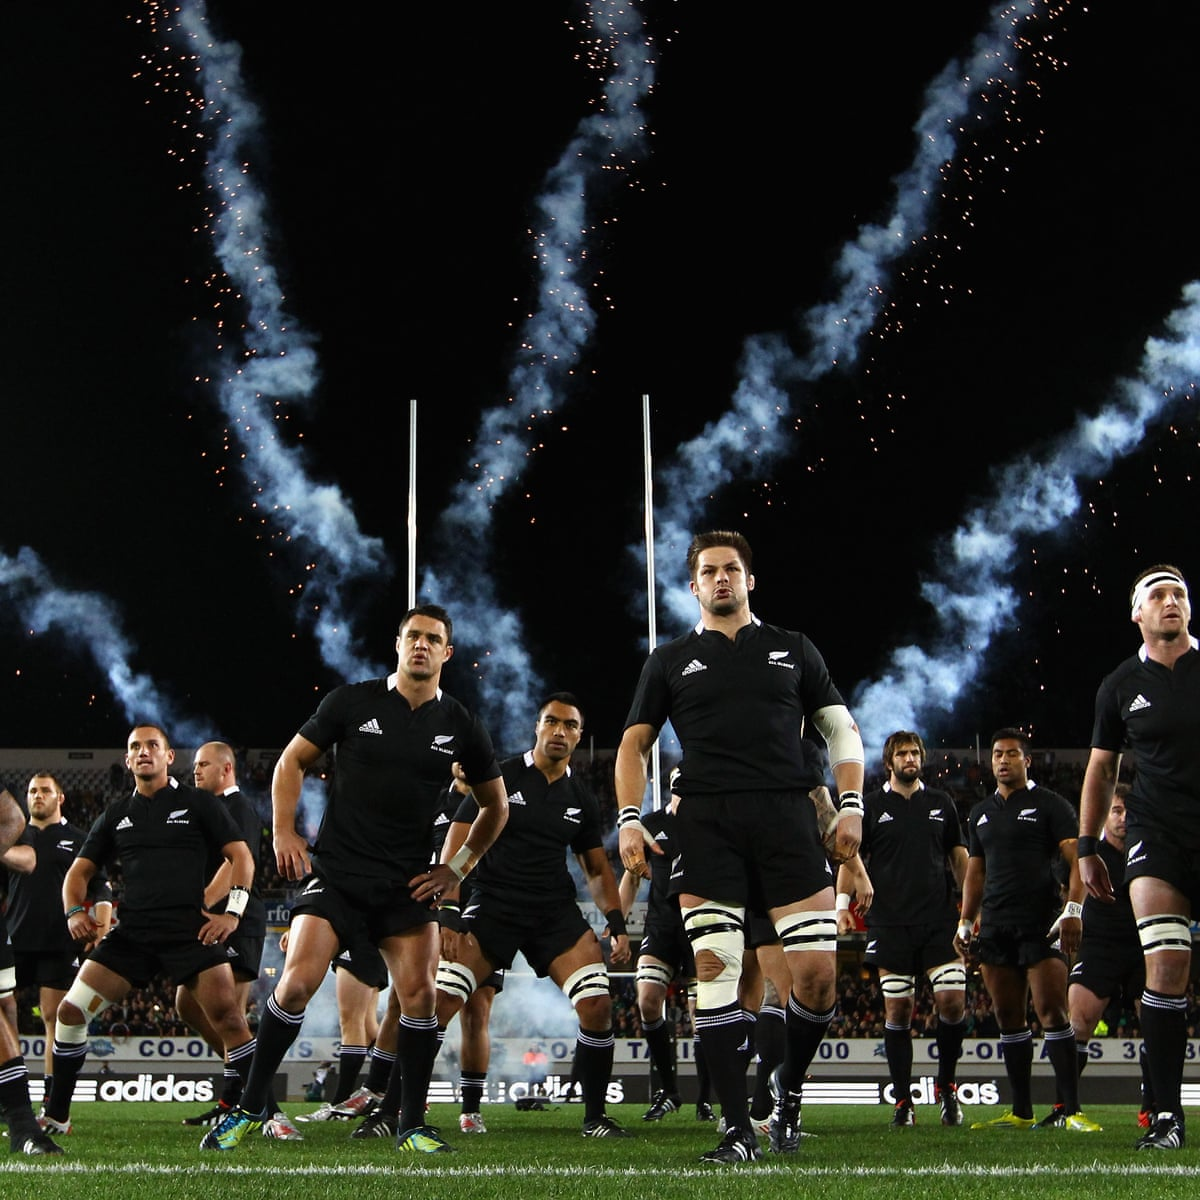 The Making Of An All Black How New Zealand Sustains Its Rugby Dynasty Sport The Guardian